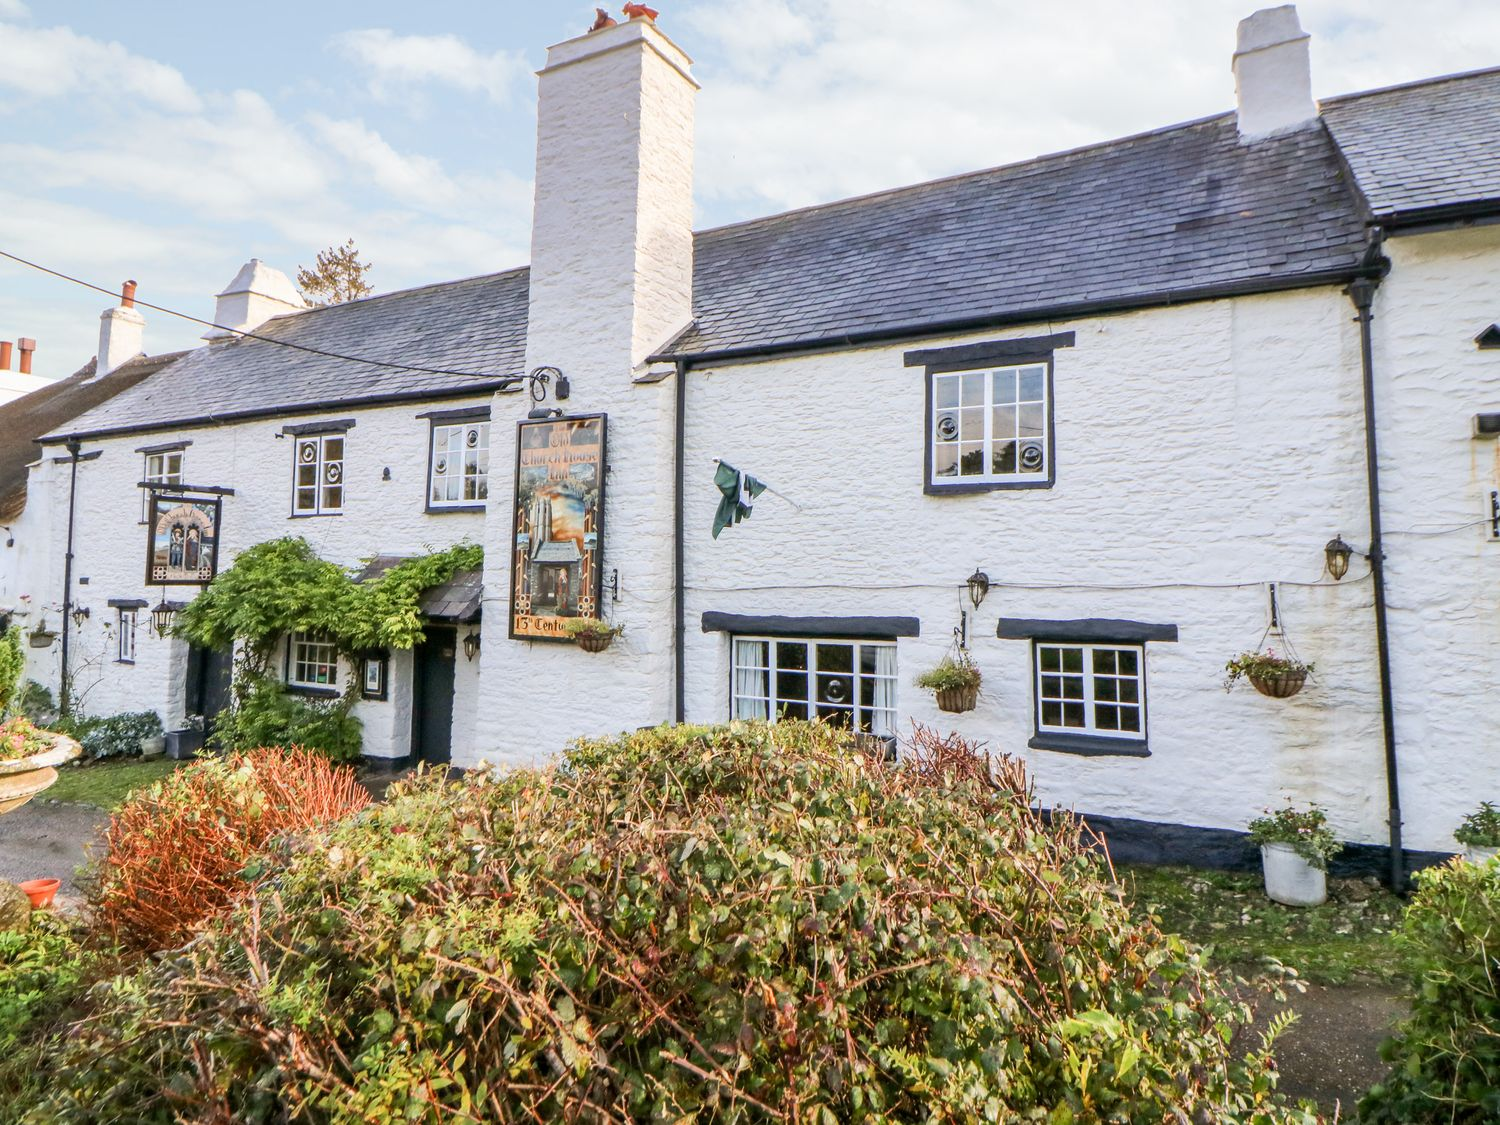 This Devon holiday home even looks like a rustic pub still